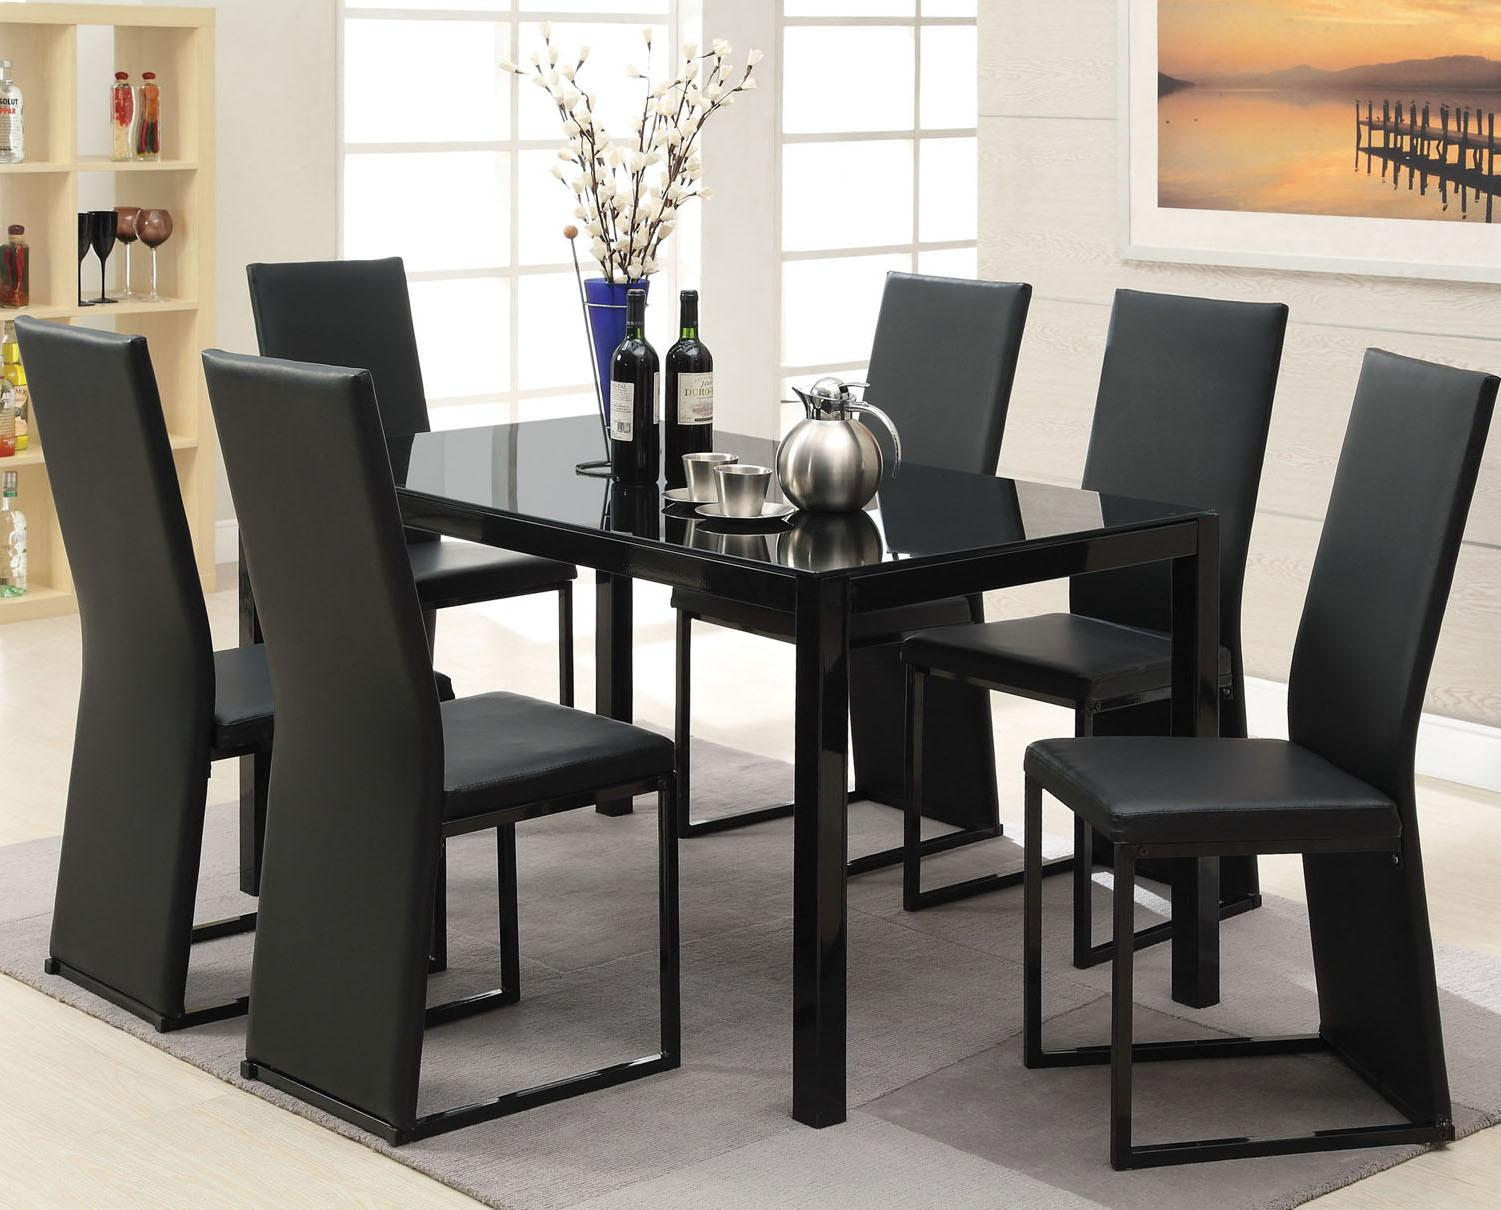 Acme Furniture Riggan Contemporary Black Leg Table With Black Vinyl Chairs Set Rooms For Less Dining 7 Or More Piece Set